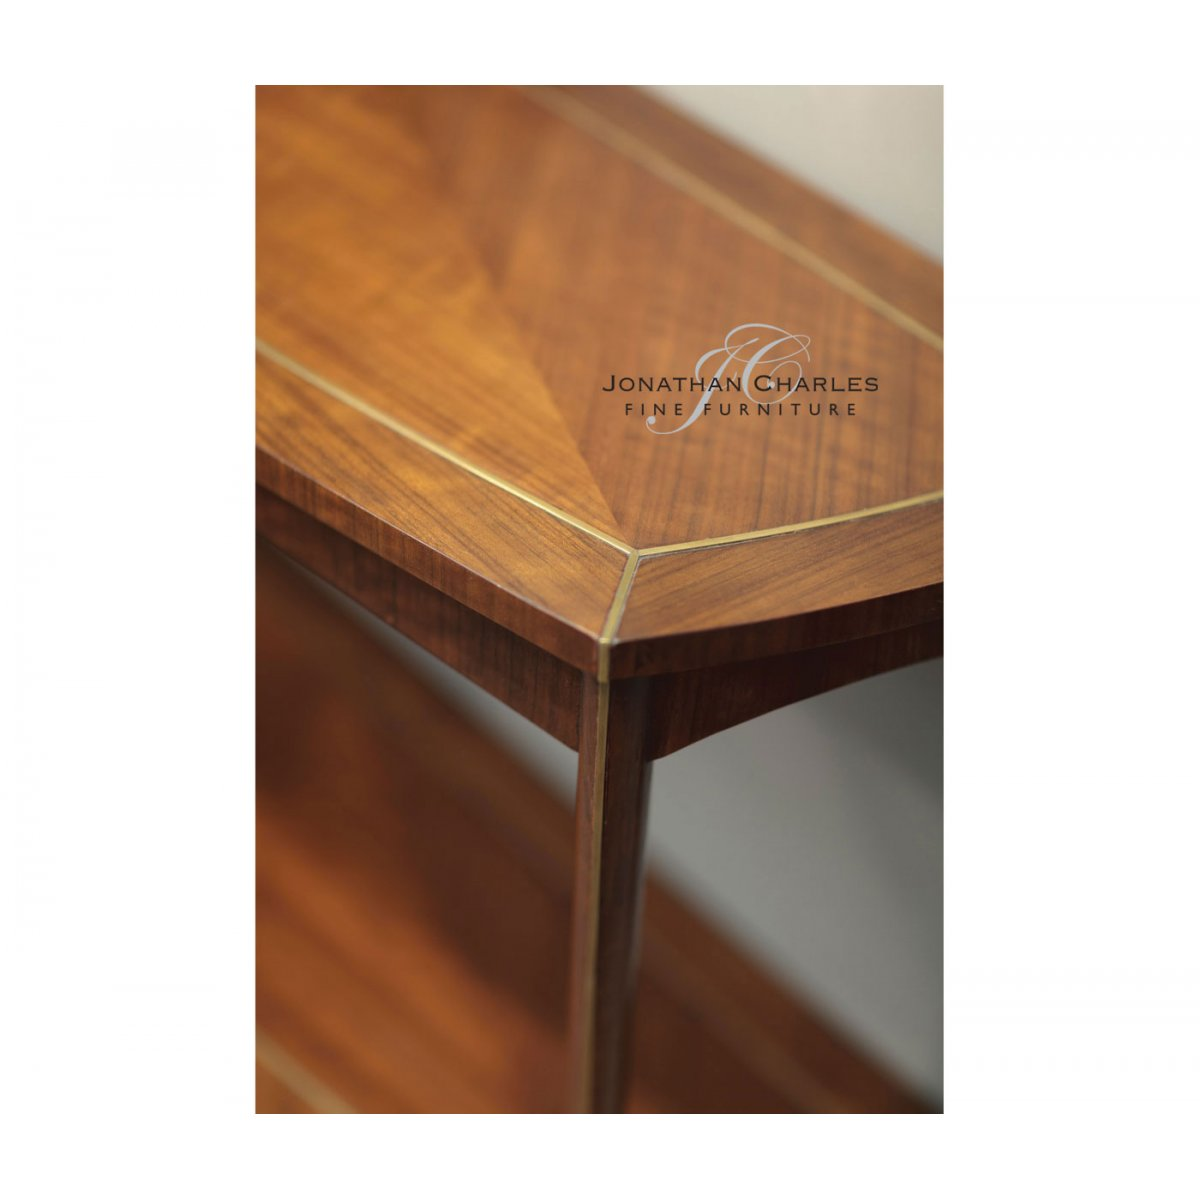 Fantastic Jonathan Charles Furniture Narrow Console Table With Shelf Unemploymentrelief Wooden Chair Designs For Living Room Unemploymentrelieforg